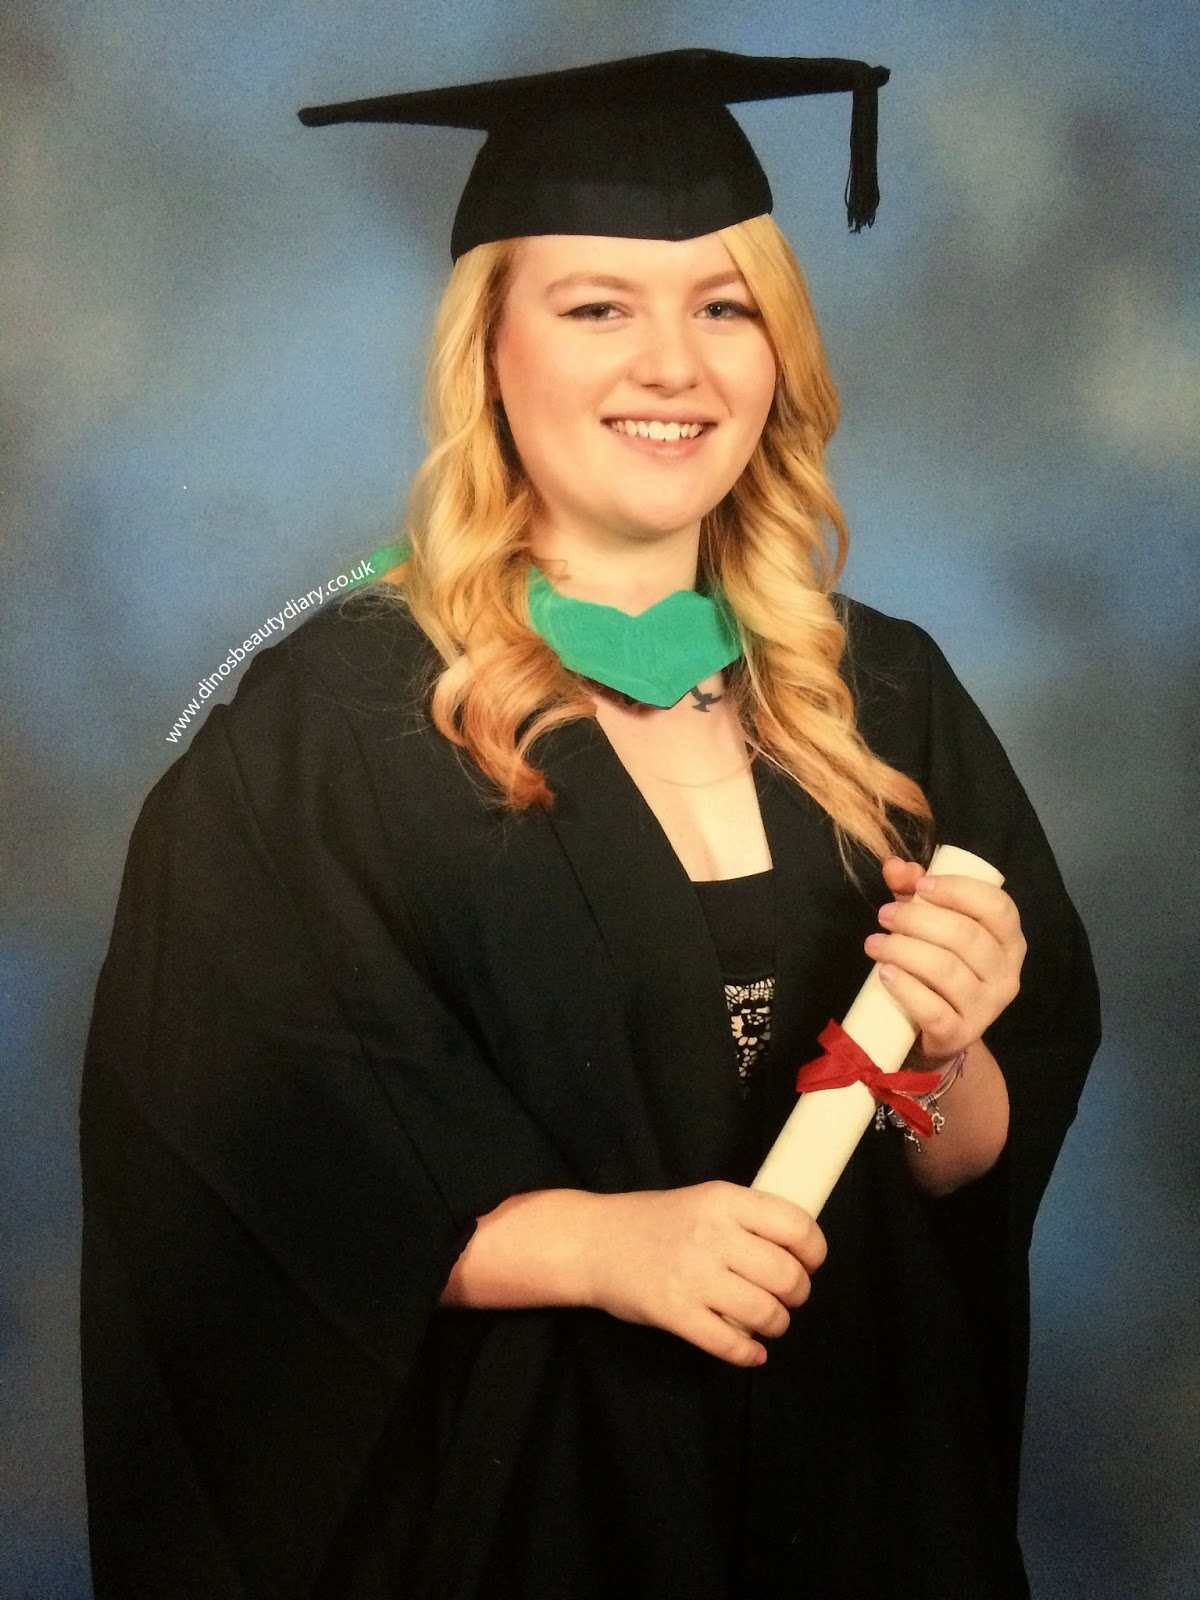 Dinos Beauty Diary - Graduation 29/11/14 - Nottingham Trent University - Nottingham Law School